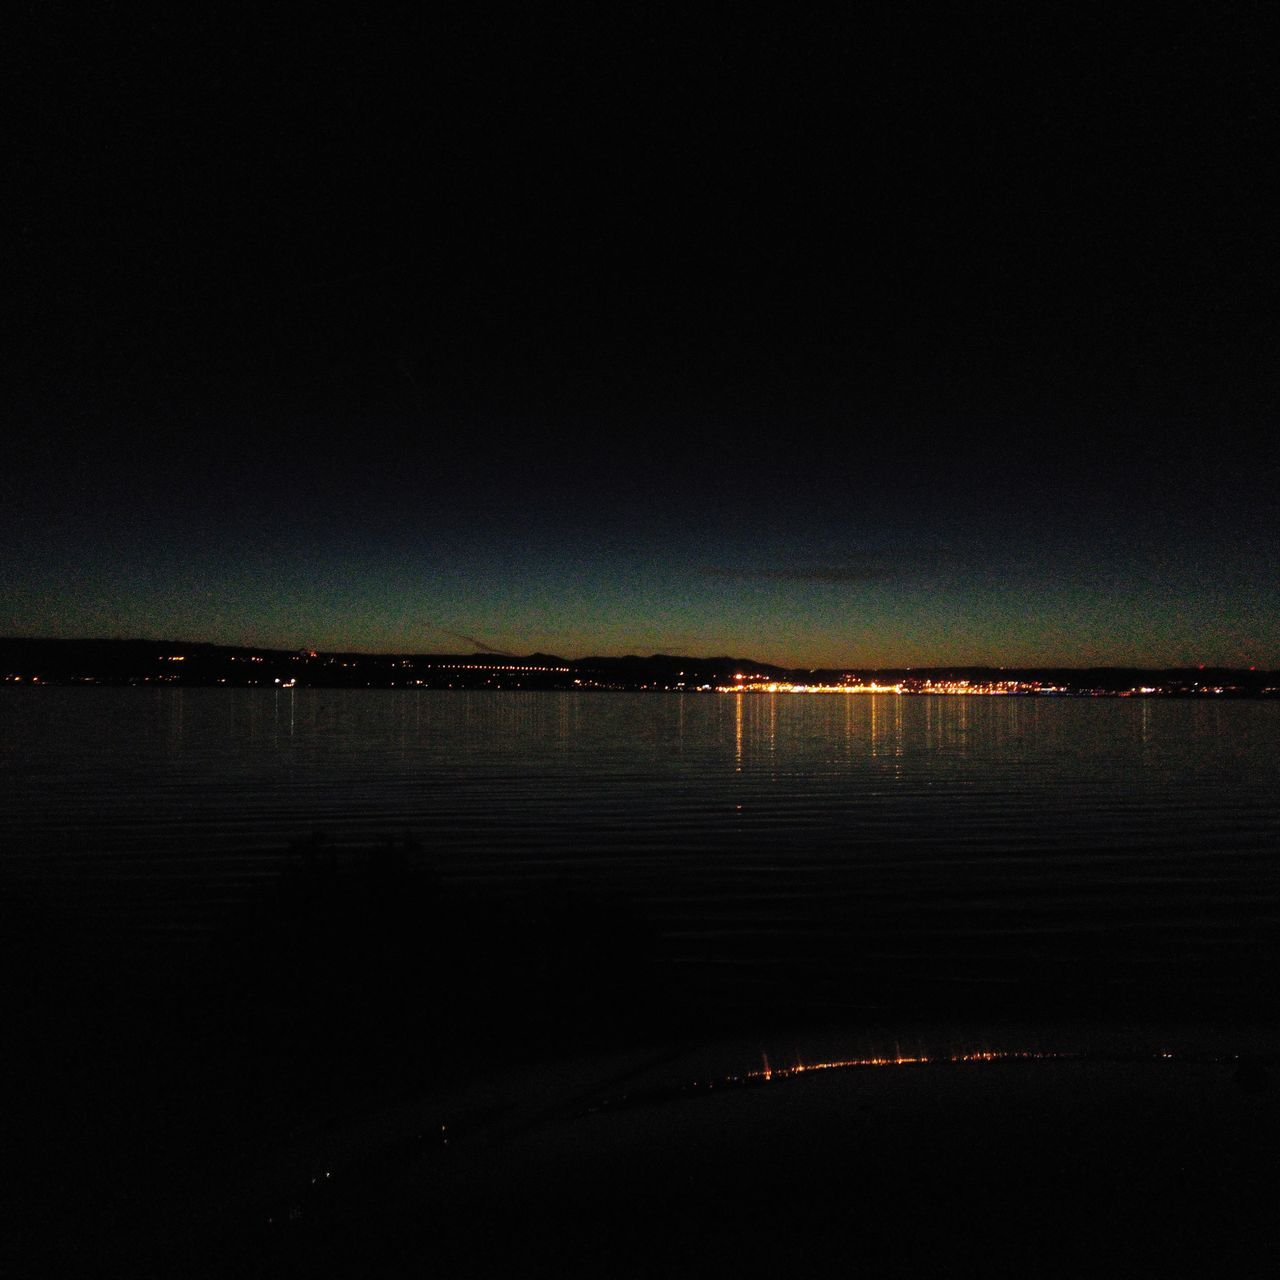 water, nature, scenics, tranquil scene, reflection, beauty in nature, tranquility, night, outdoors, no people, sky, lake, waterfront, silhouette, illuminated, clear sky